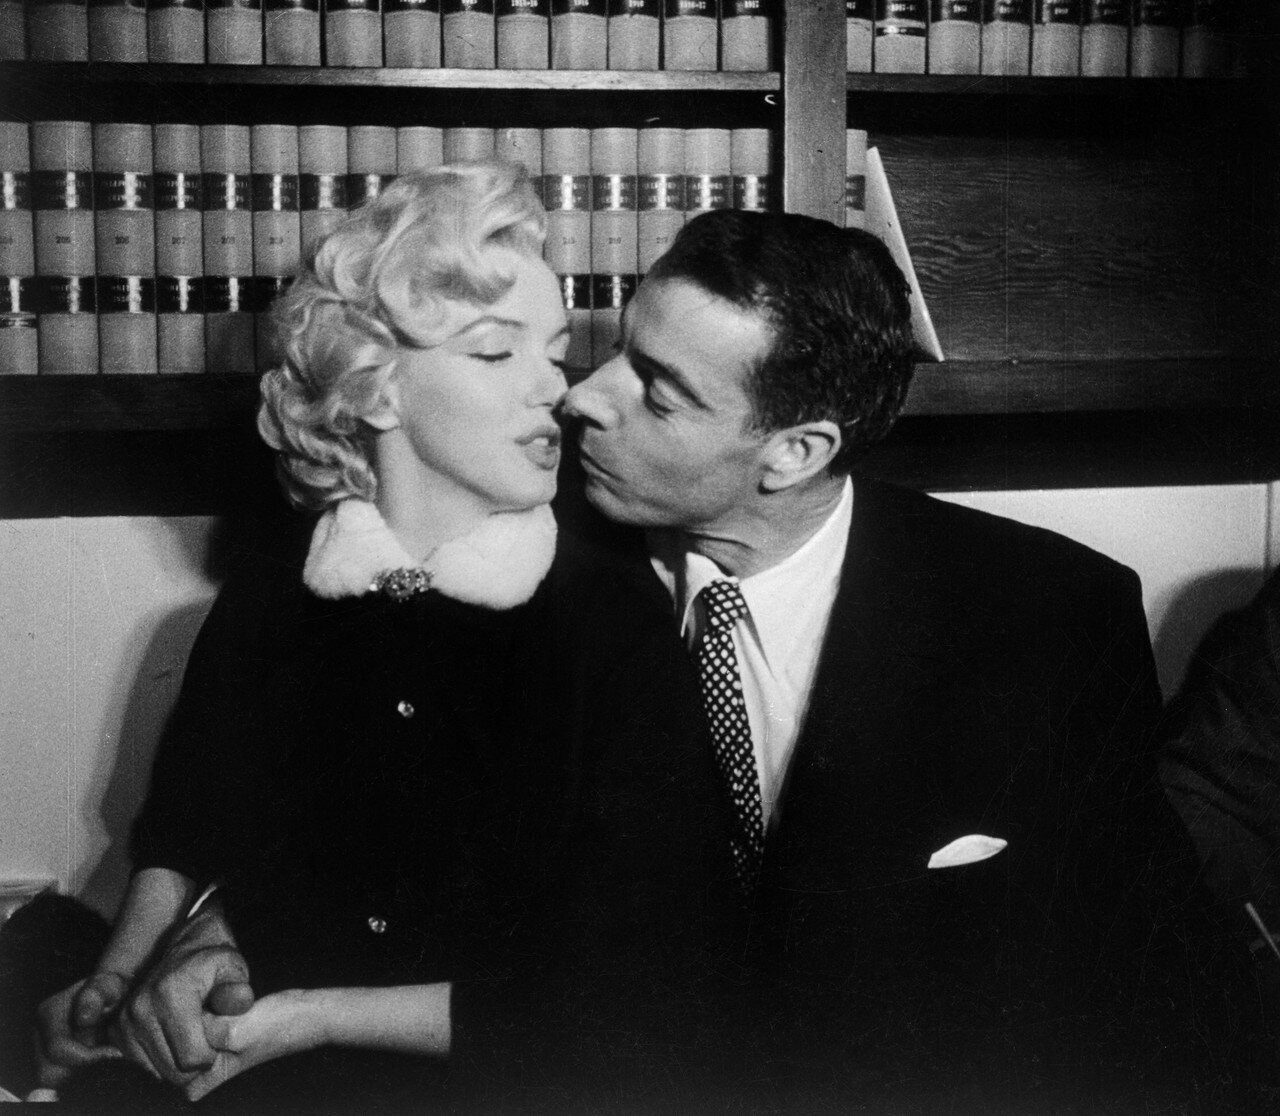 Marilyn Monroe and Joe DiMaggio Kissing After Marriage